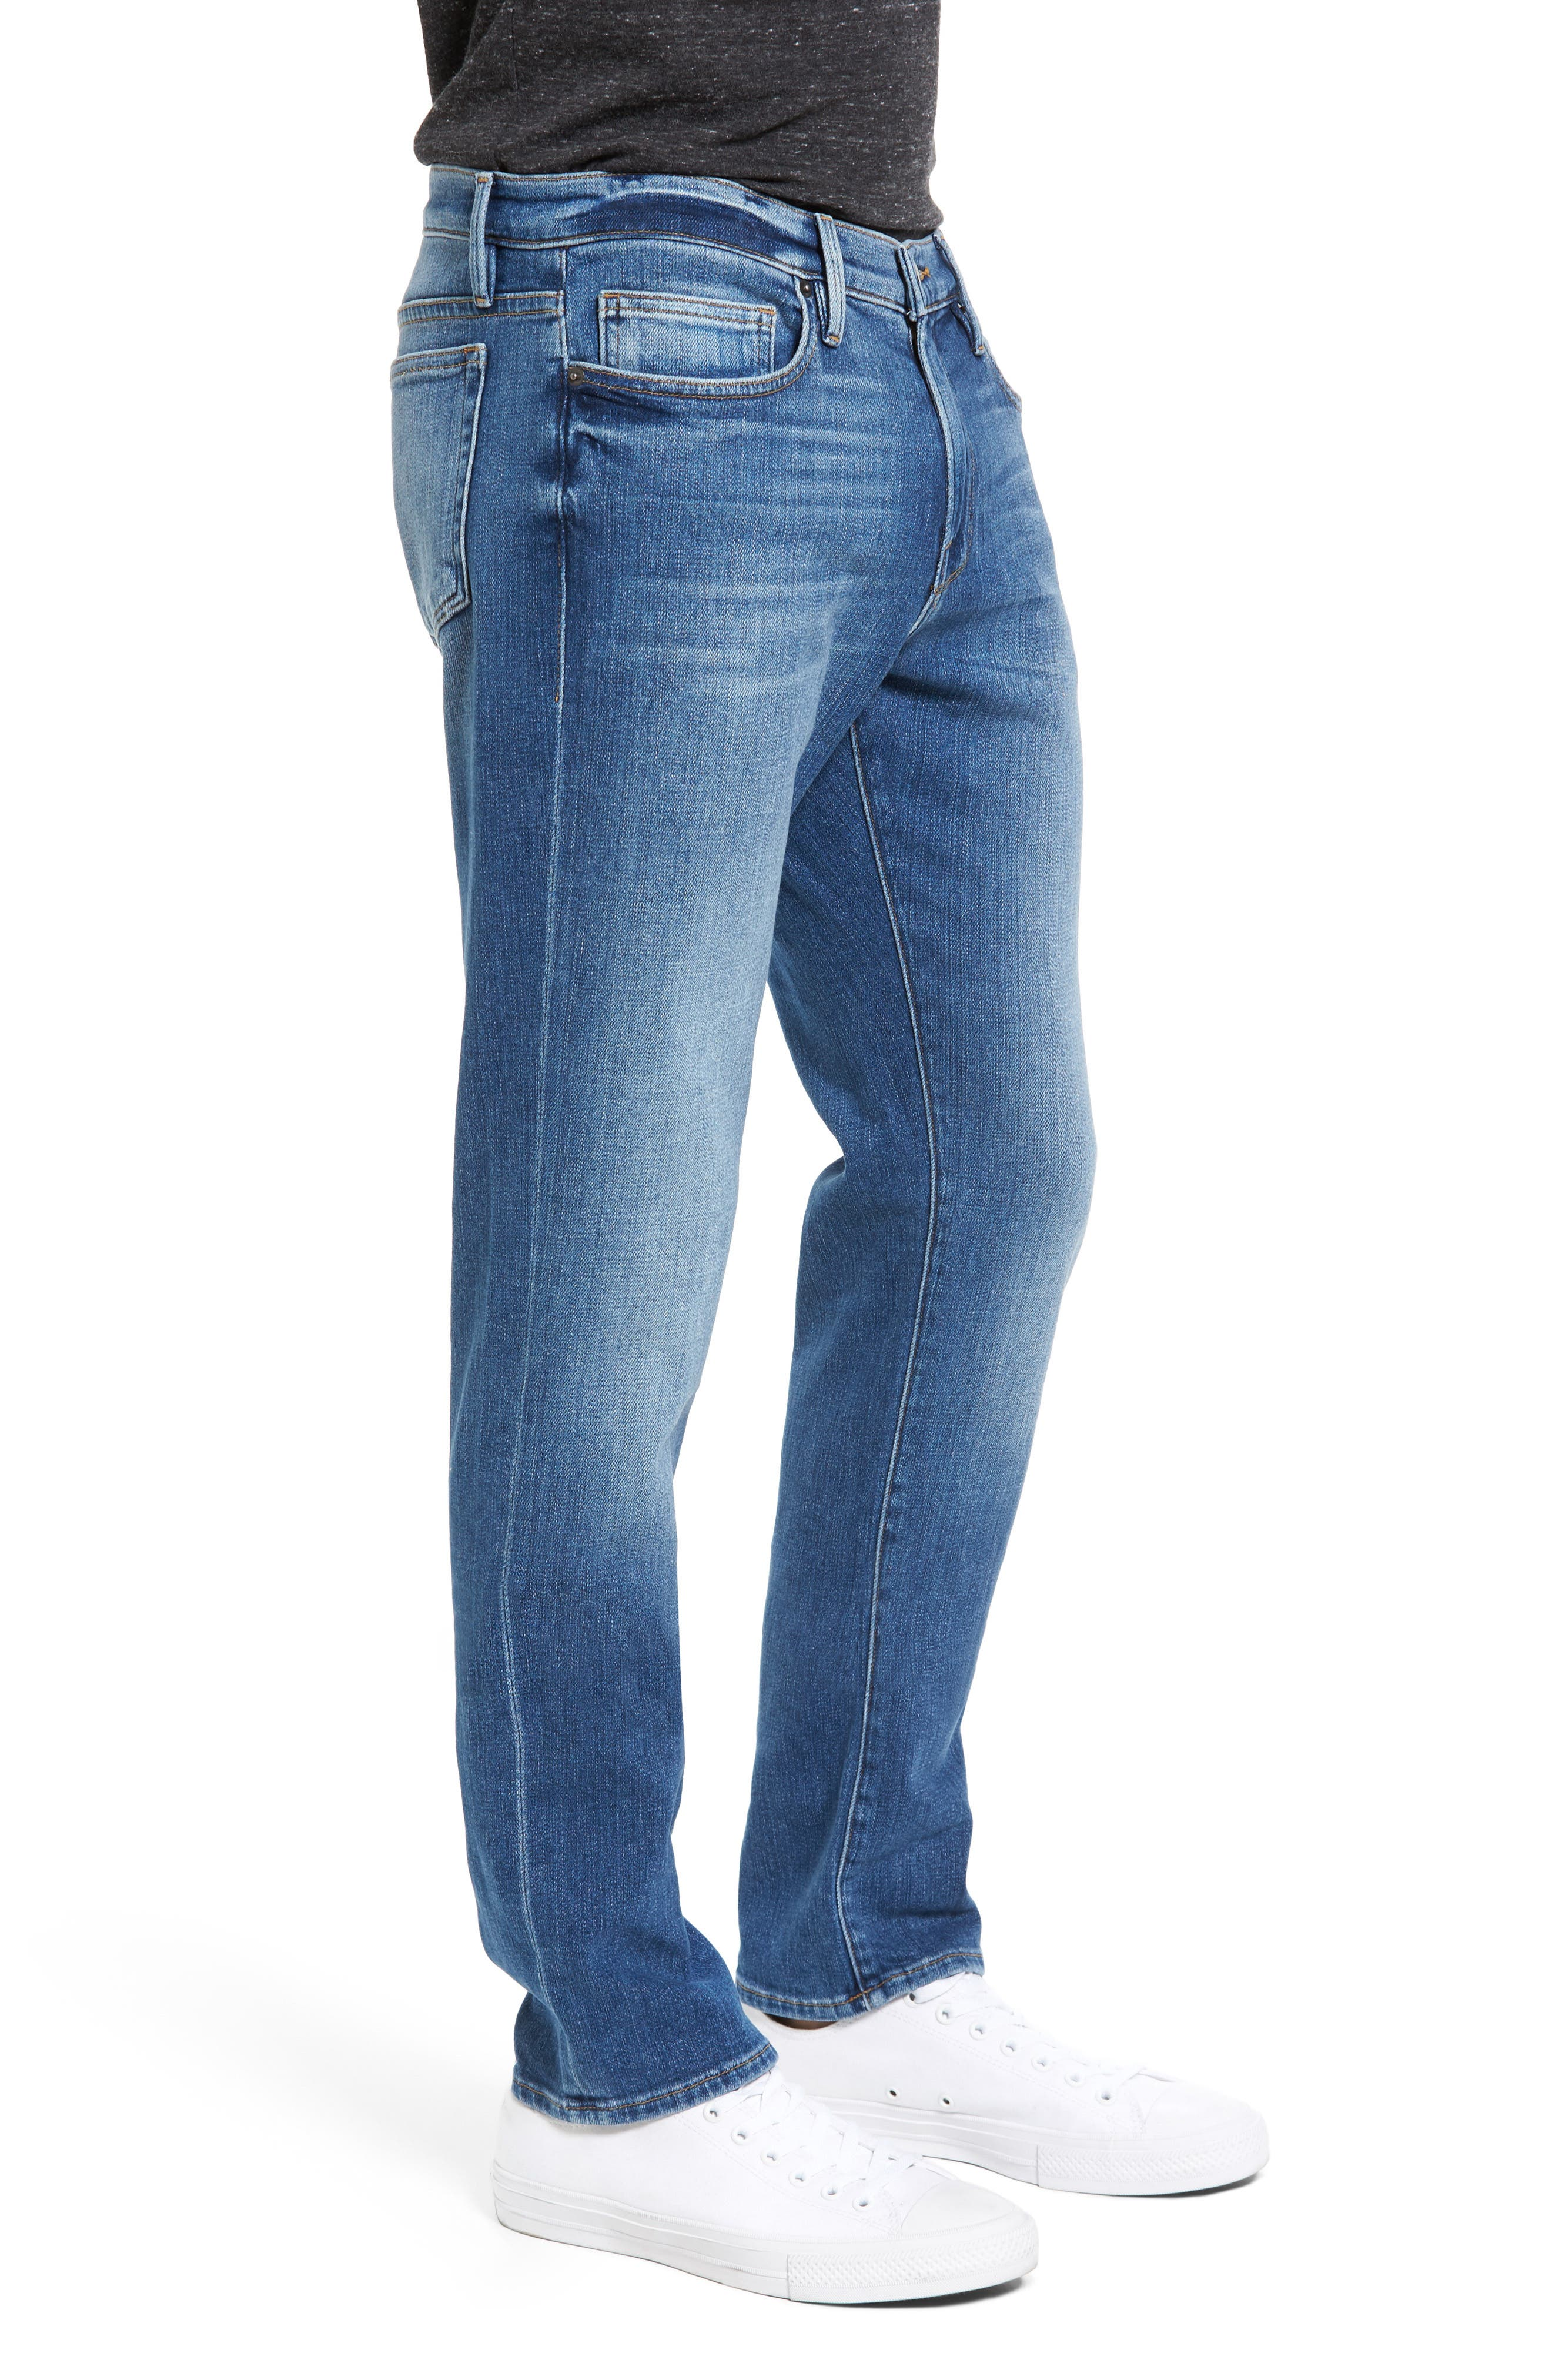 L'Homme Slim Fit Jeans,                             Alternate thumbnail 3, color,